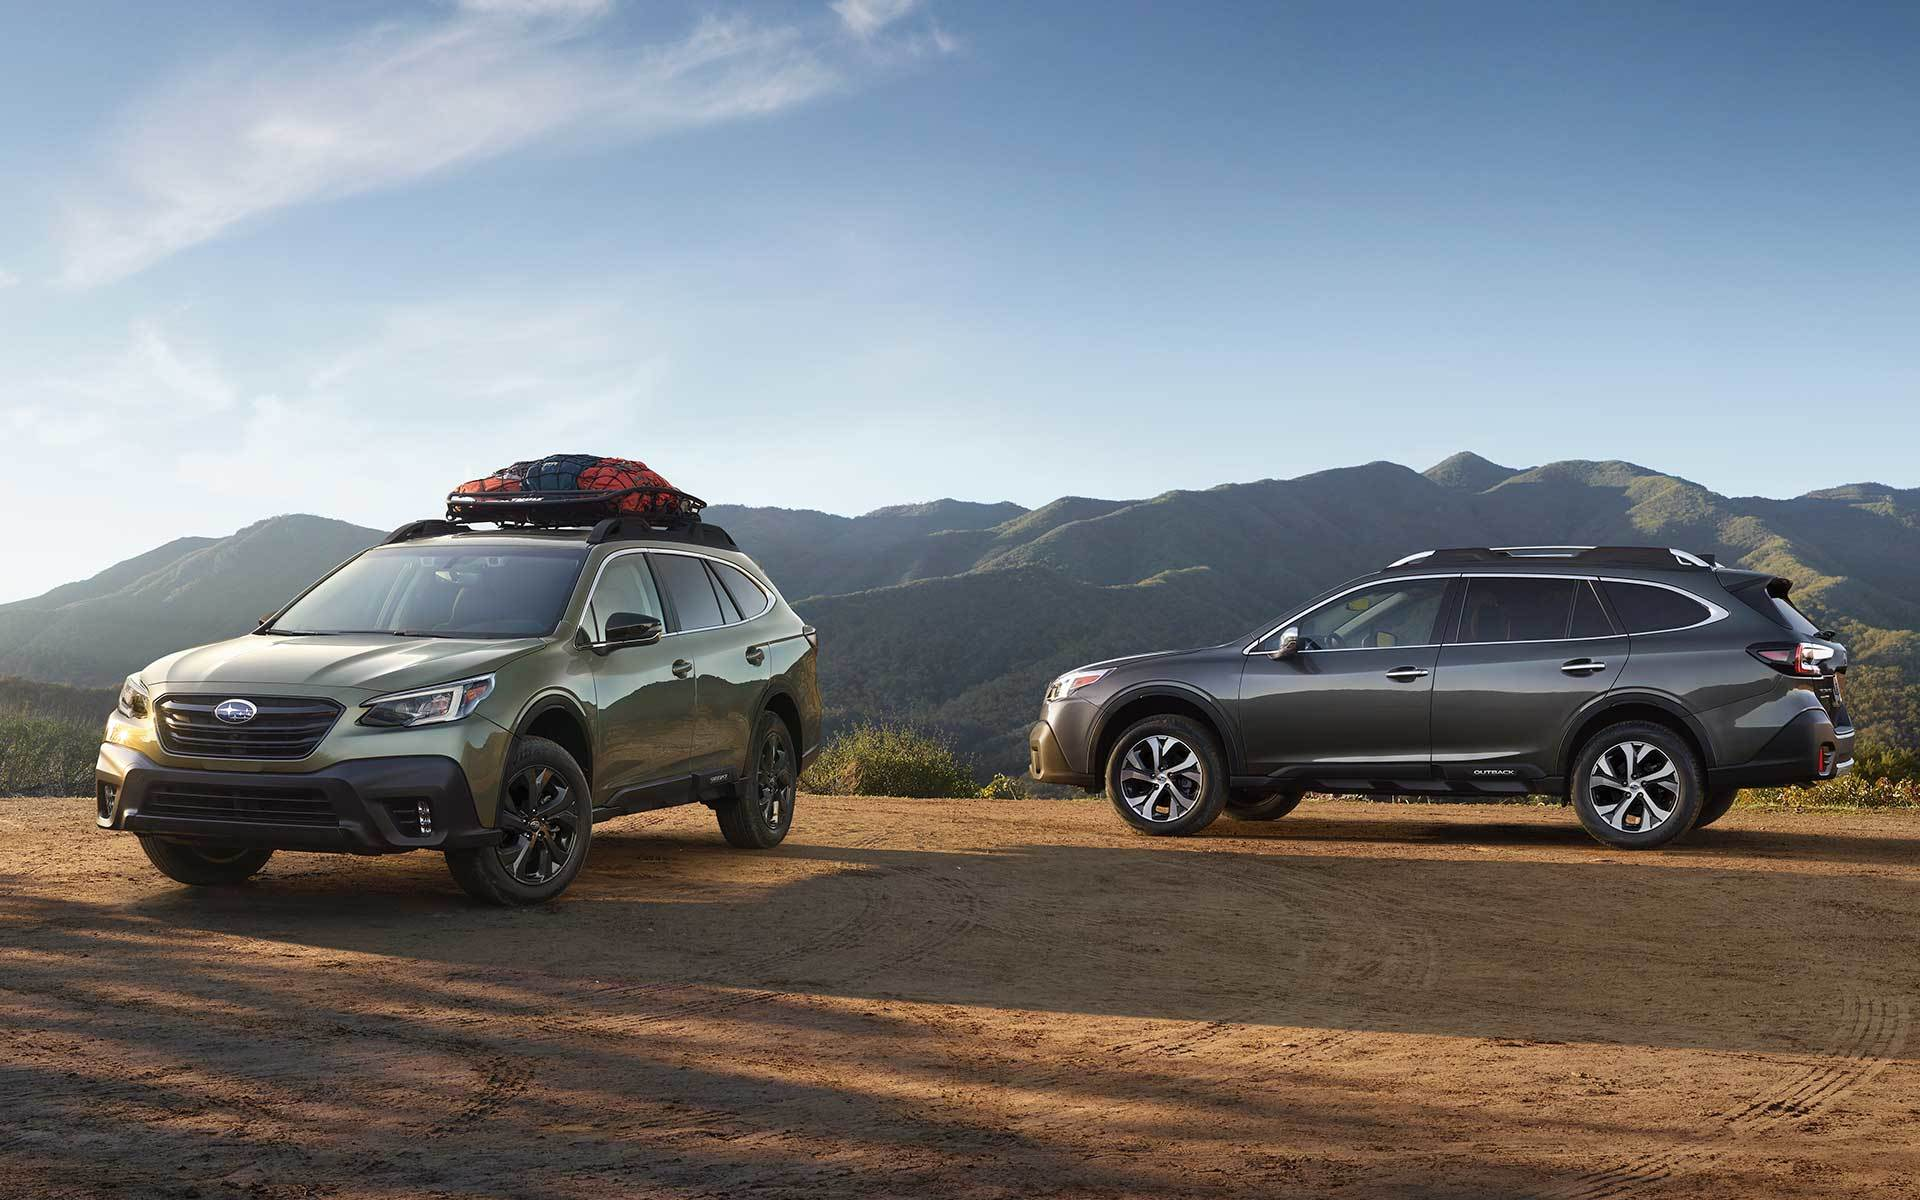 Subaru Continues to Impress with Recent Kelley Blue Book Brand Image Awards